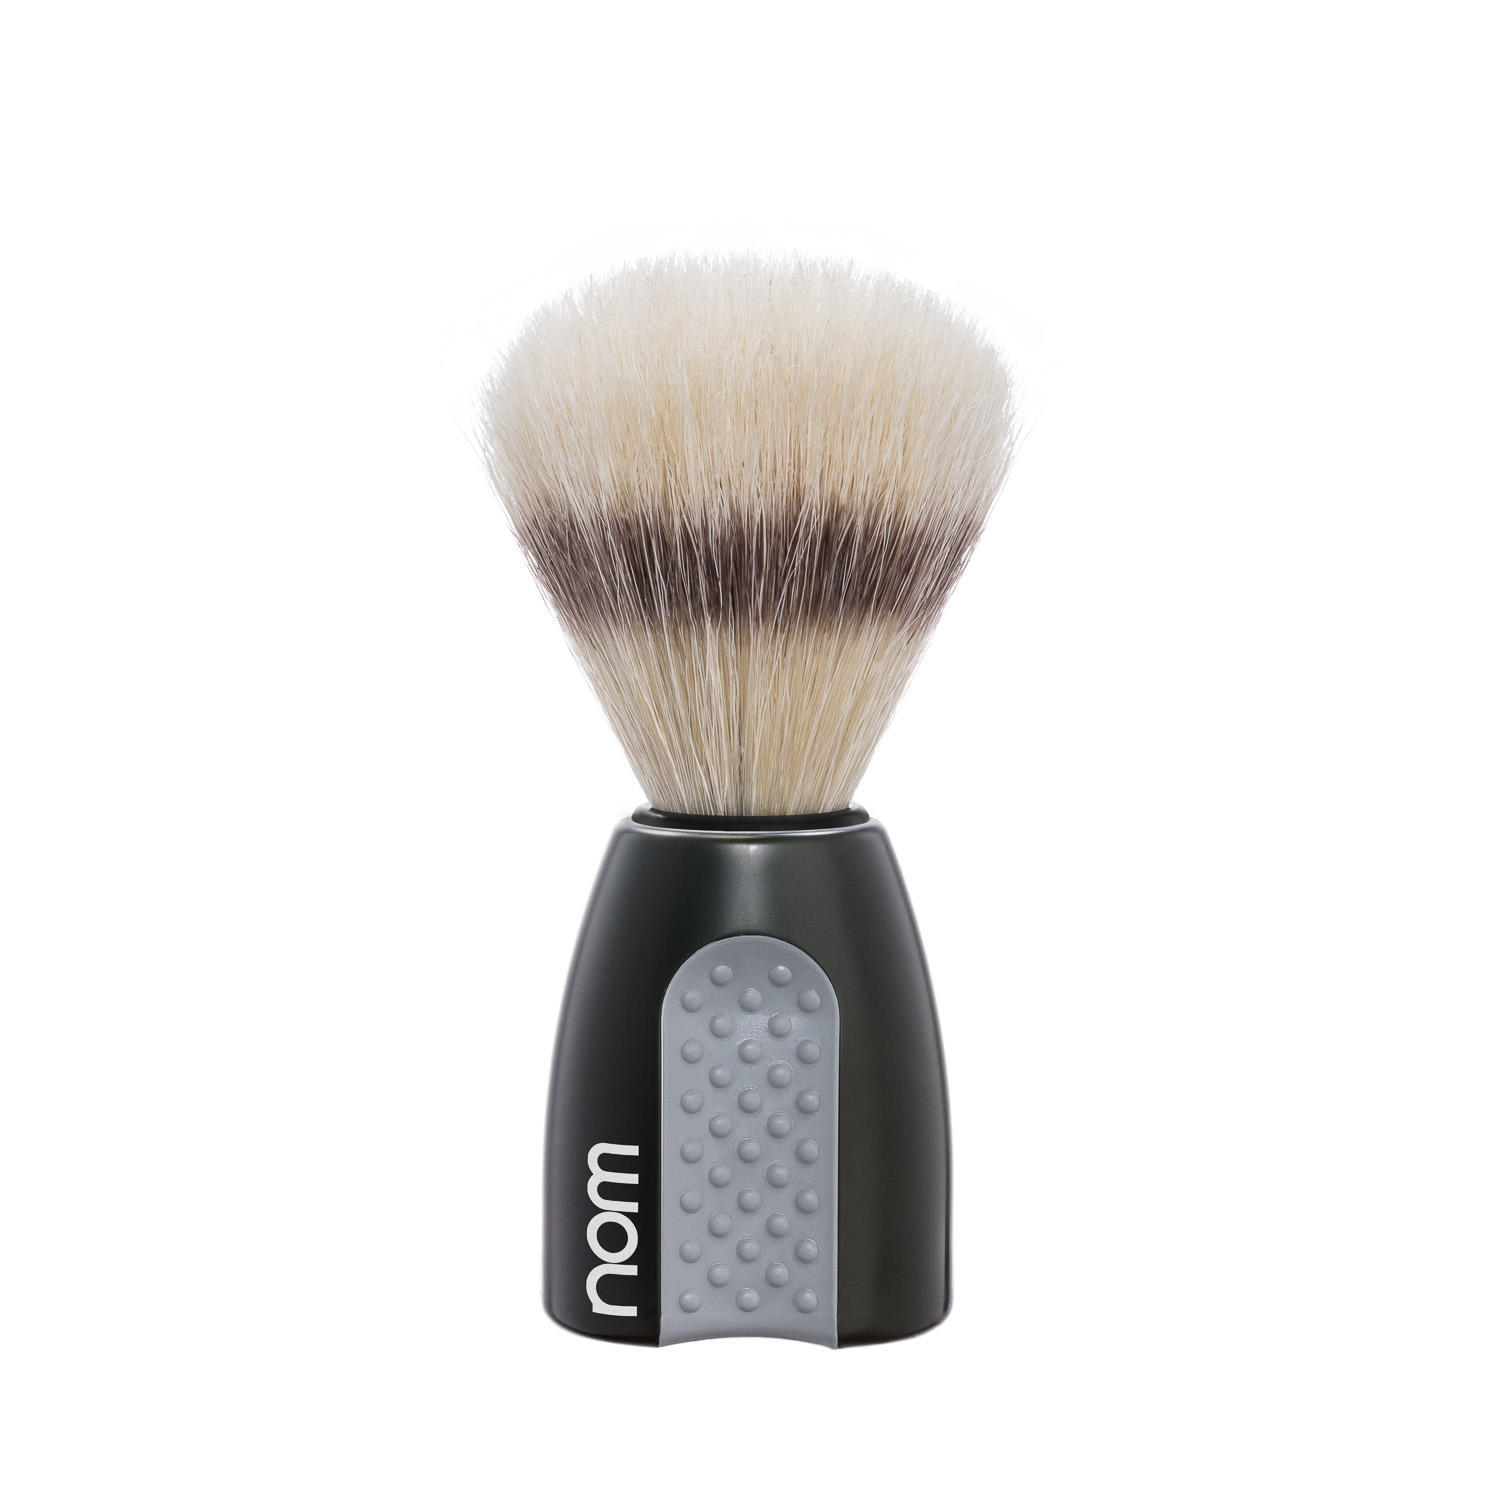 ERIK41BL NOM, ERIK black, pure bristle shaving brush